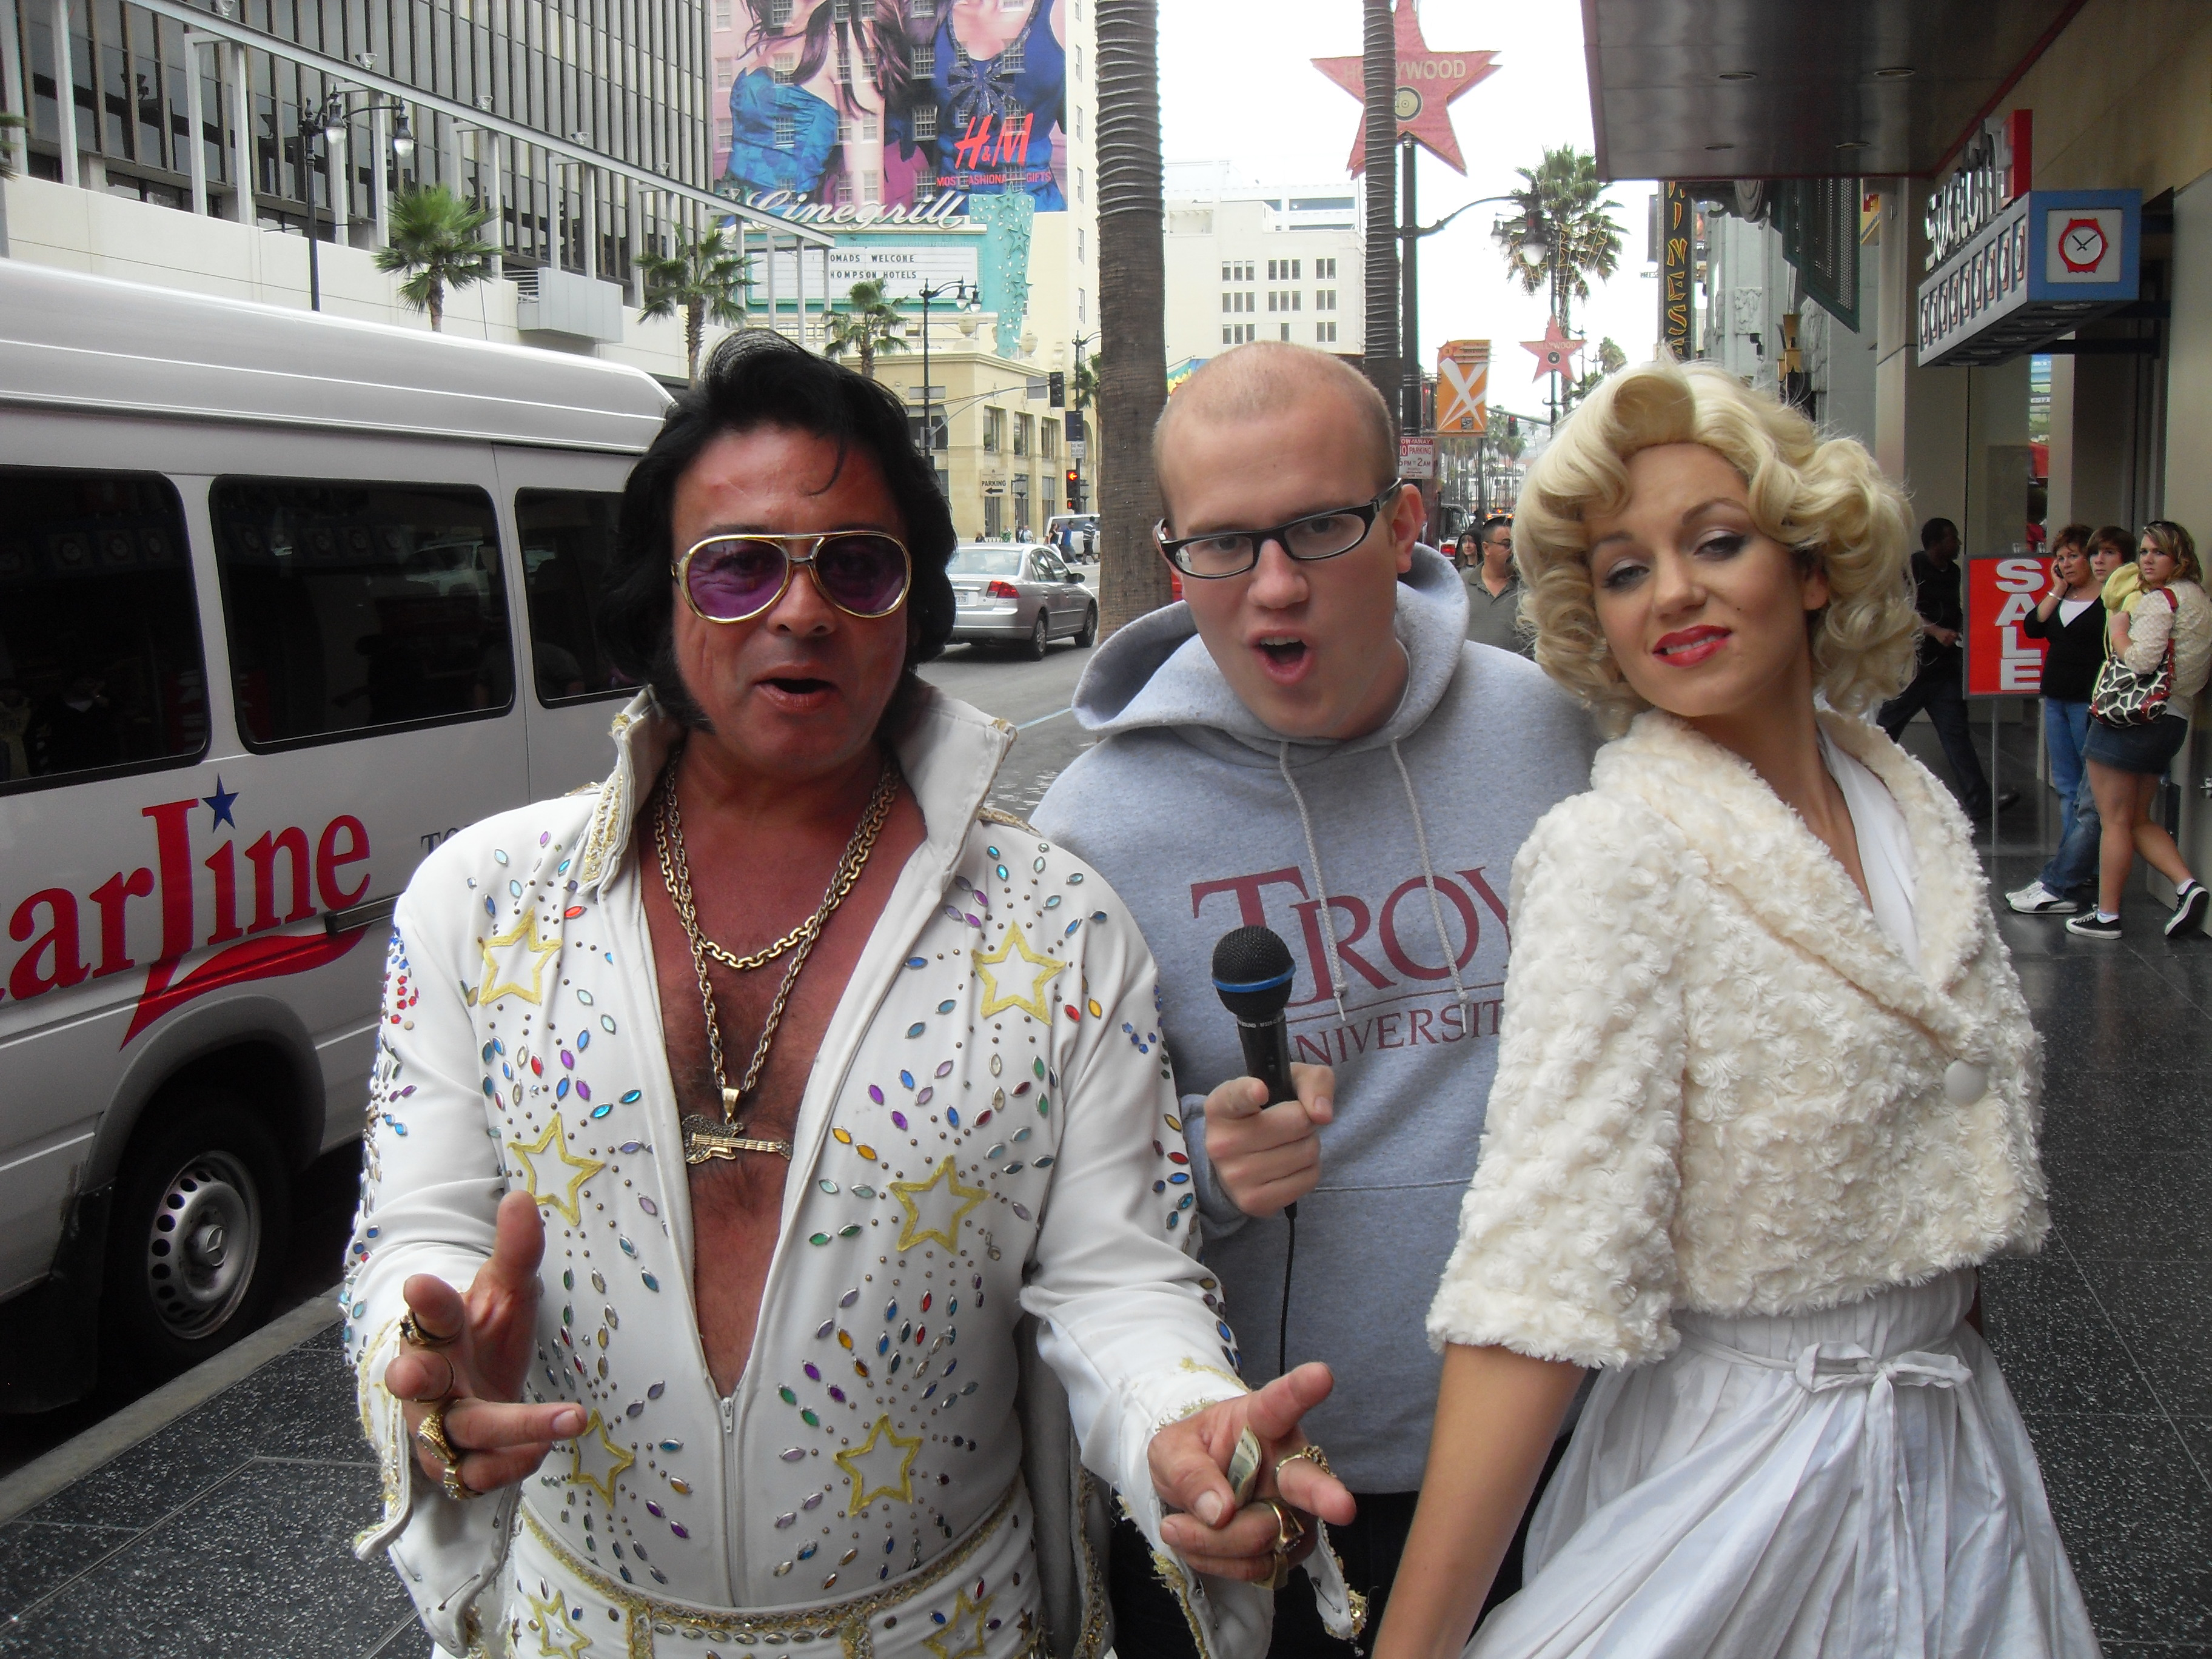 With my friends Elvis and Marilyn on Hollywood Boulevard